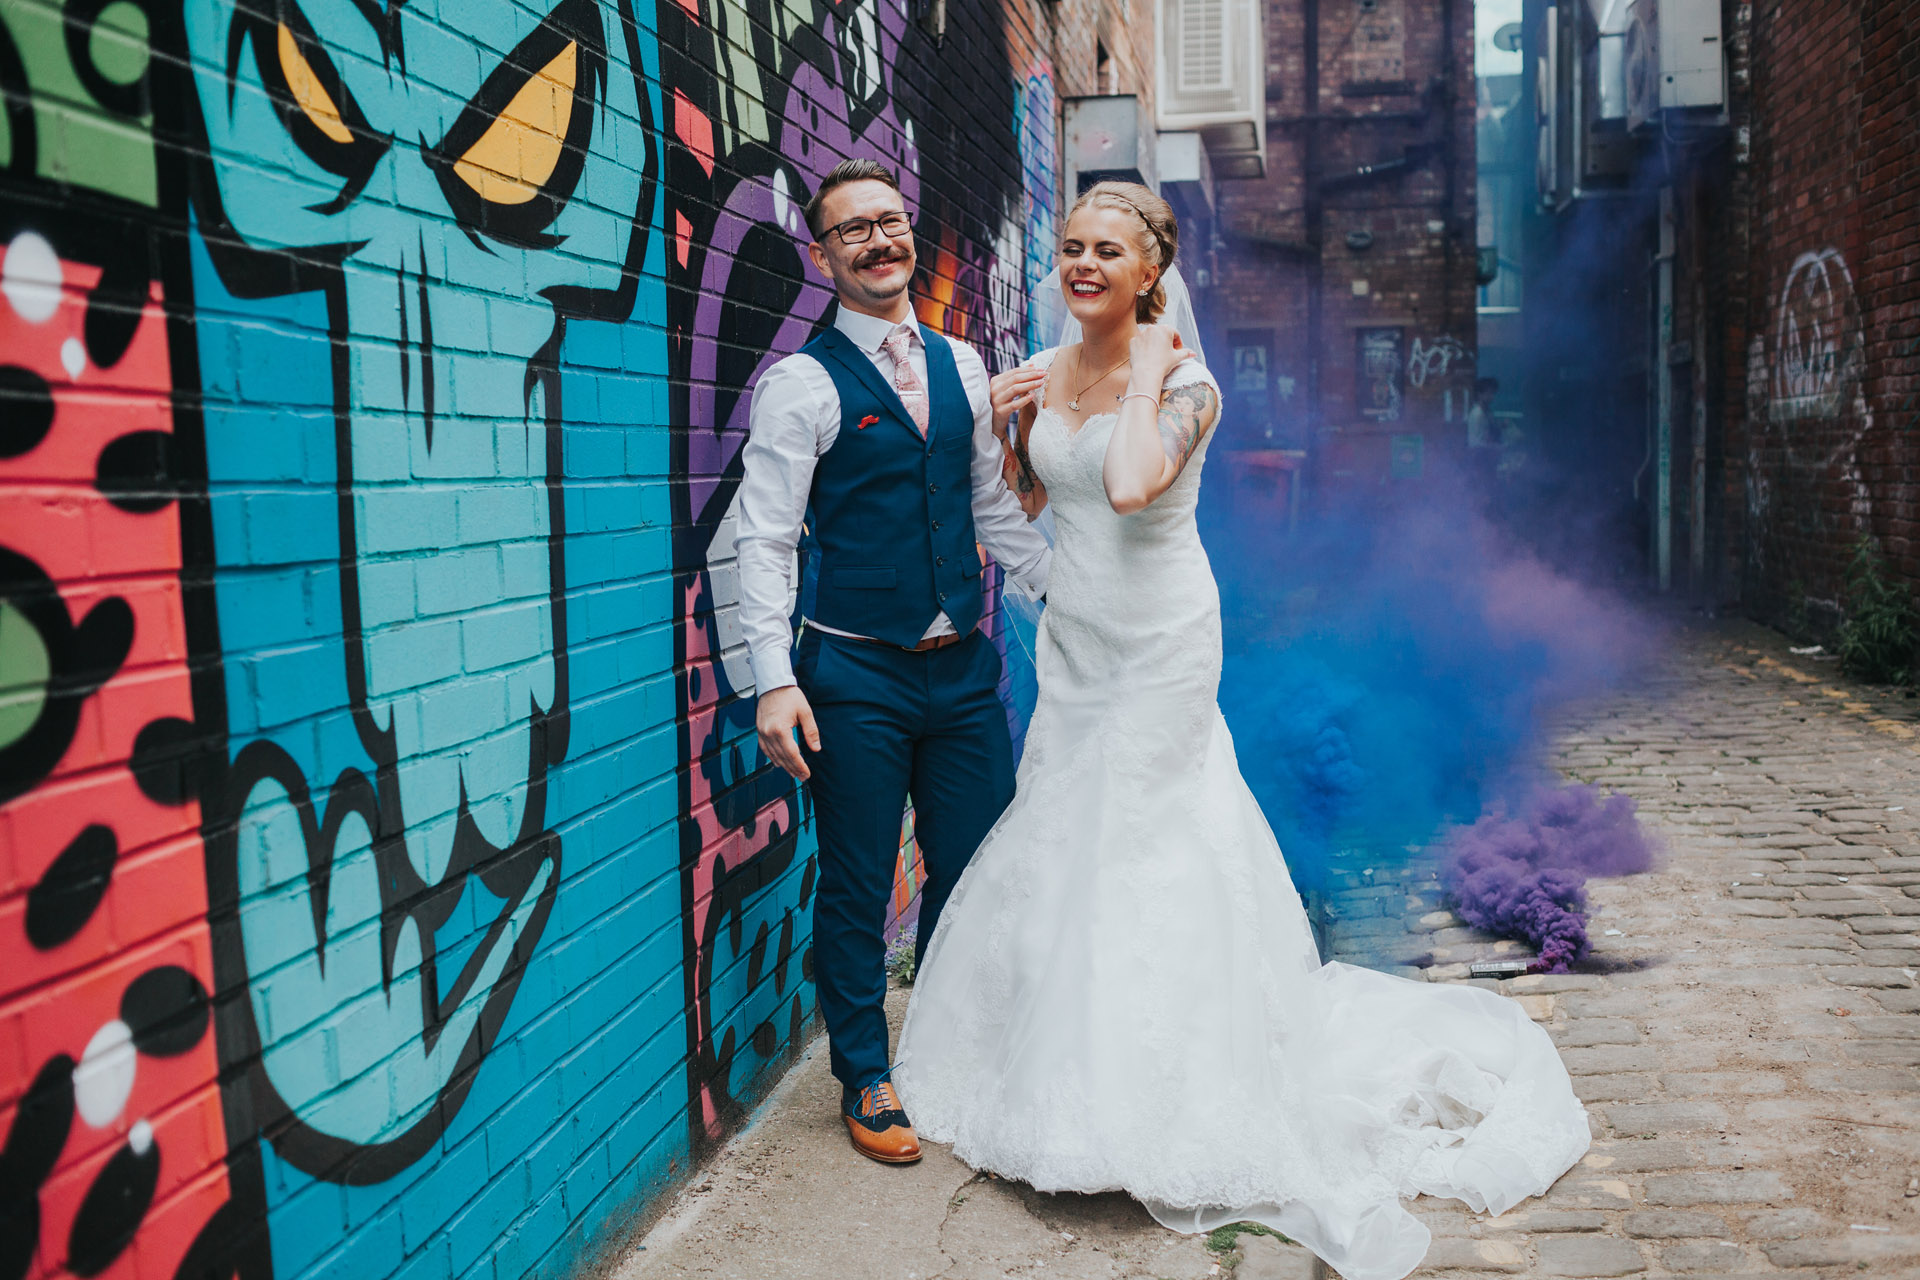 Bride and Groom in front of graffiti in Manchester.